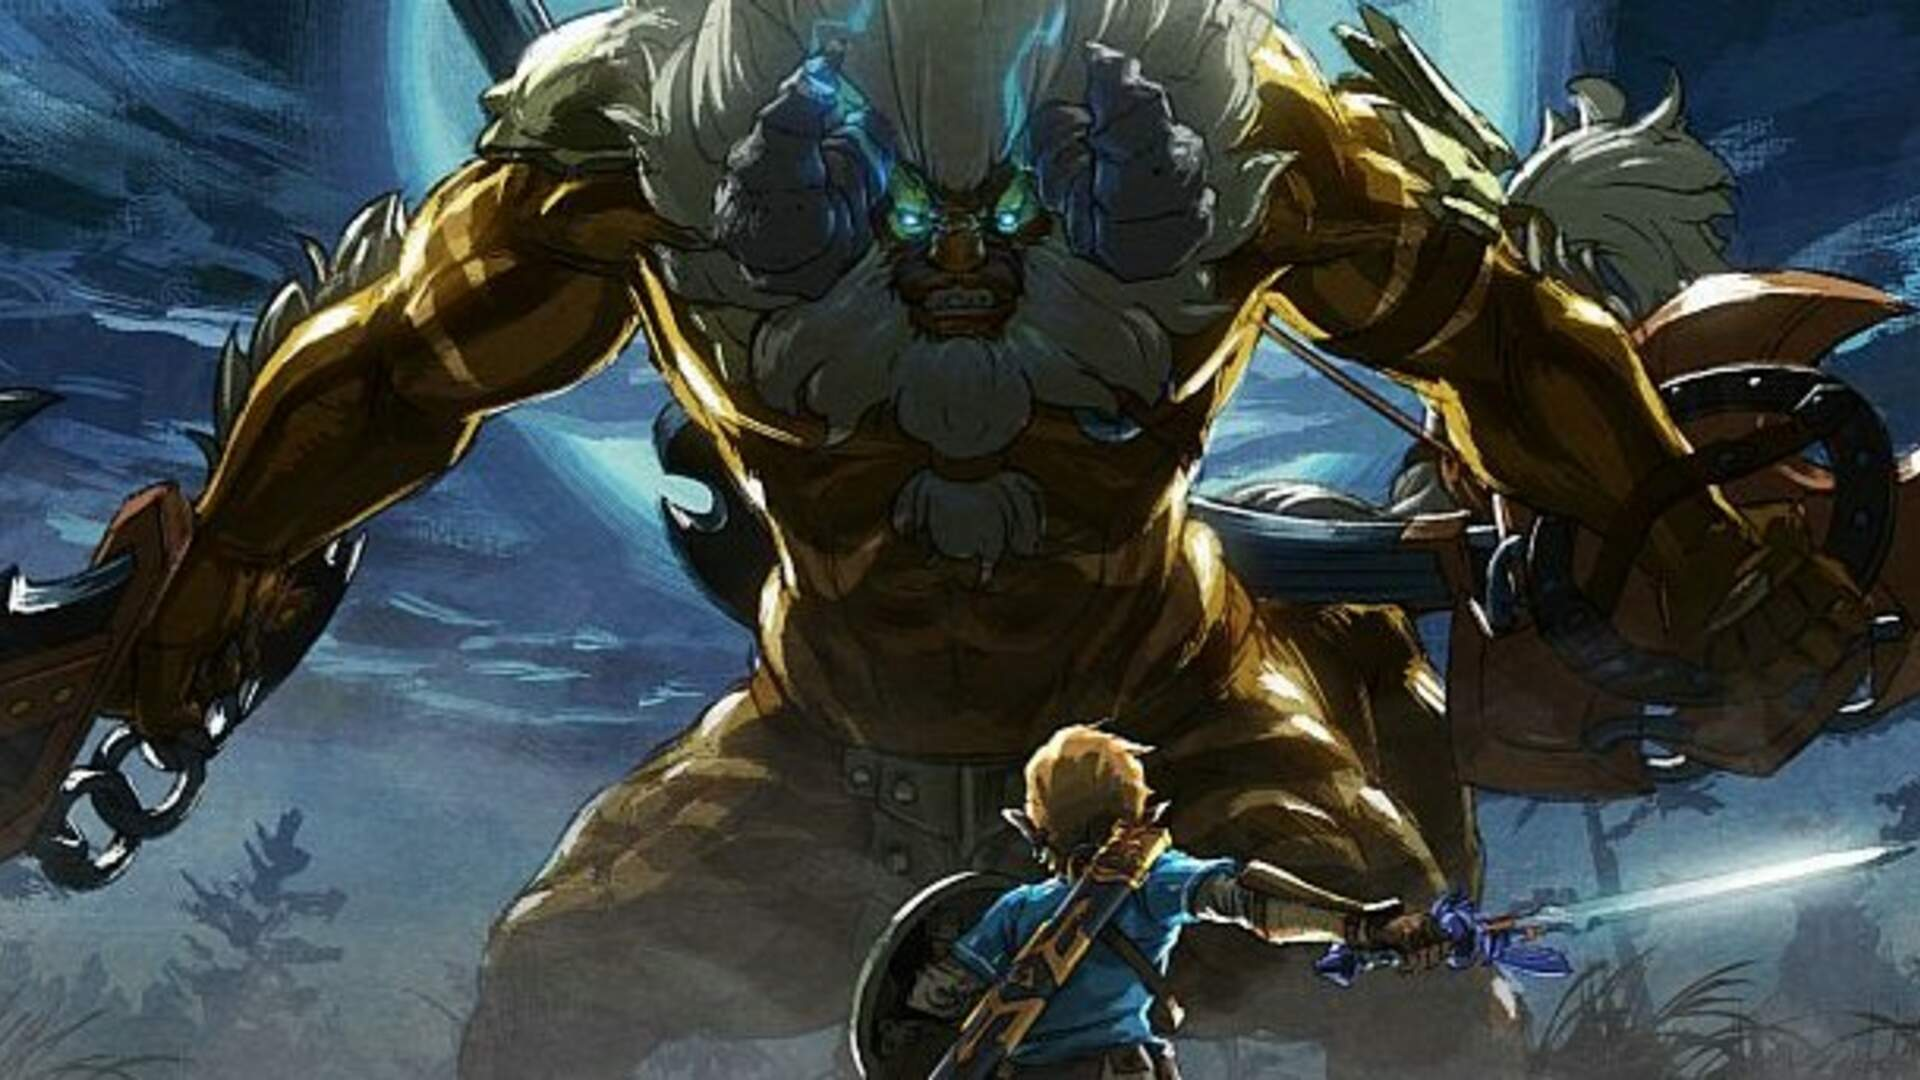 The Legend of Zelda: Breath of the Wild Without Cel-Shading is Missing the Nintendo Magic